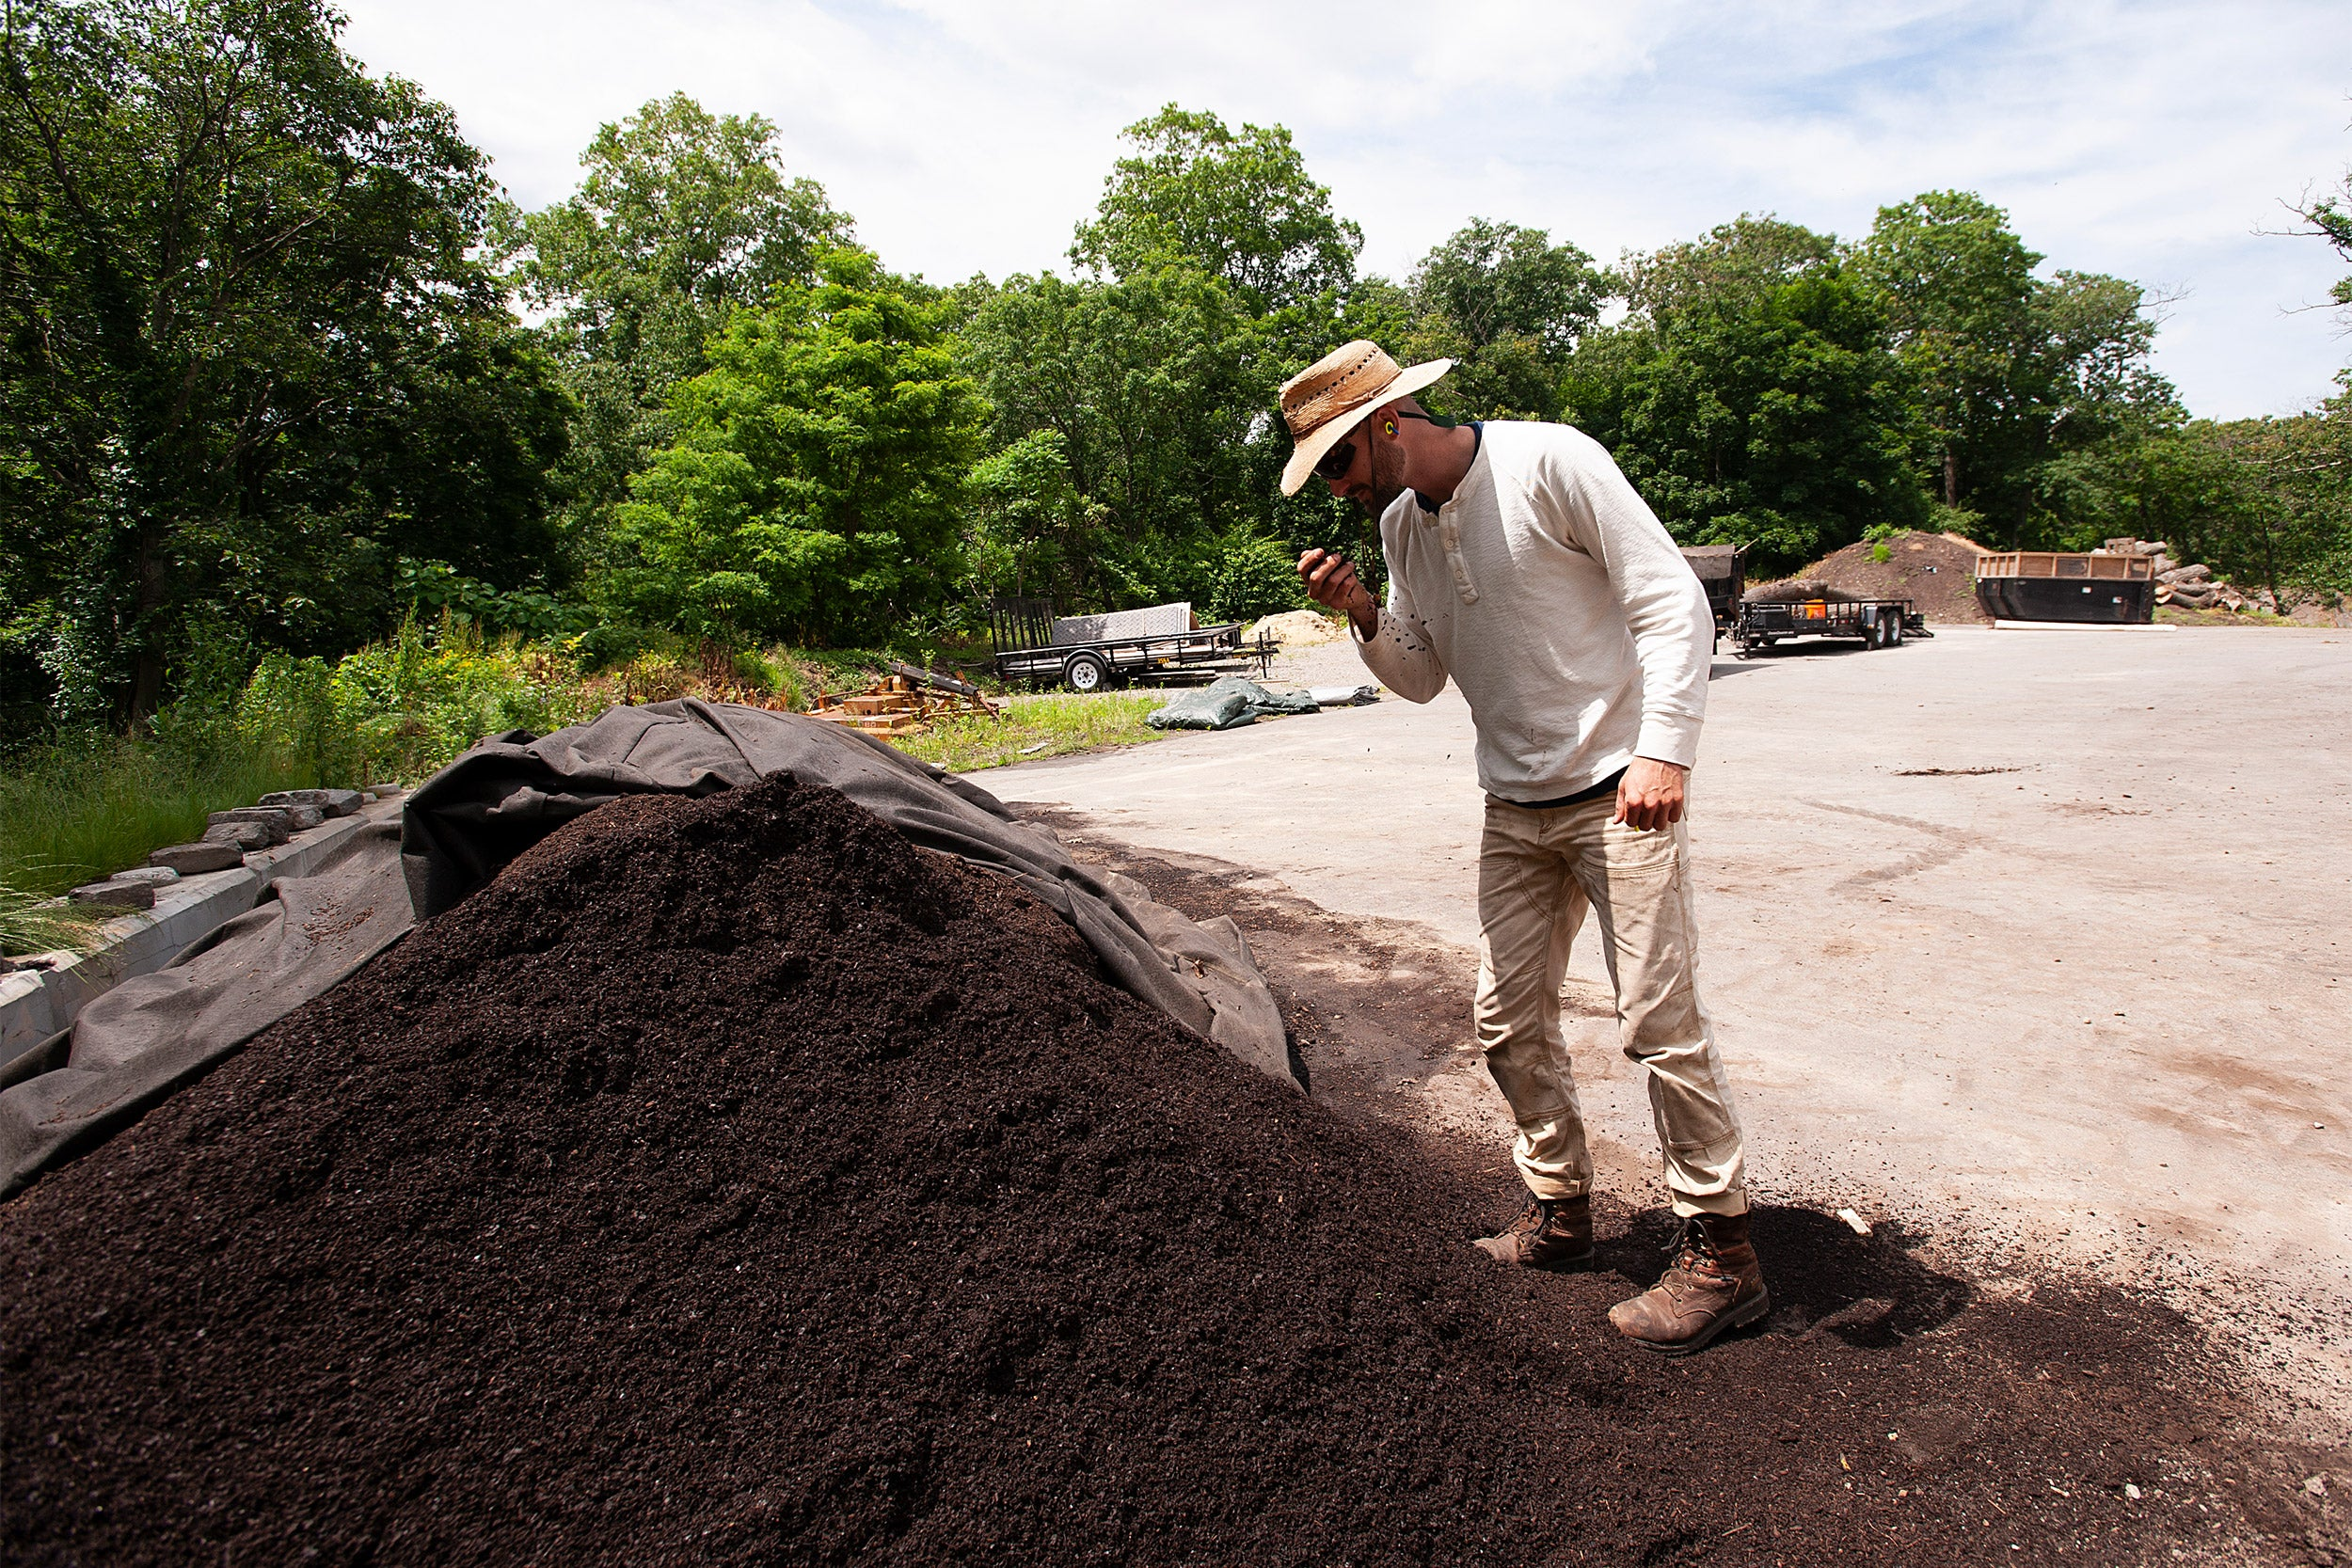 Man examines compost pile